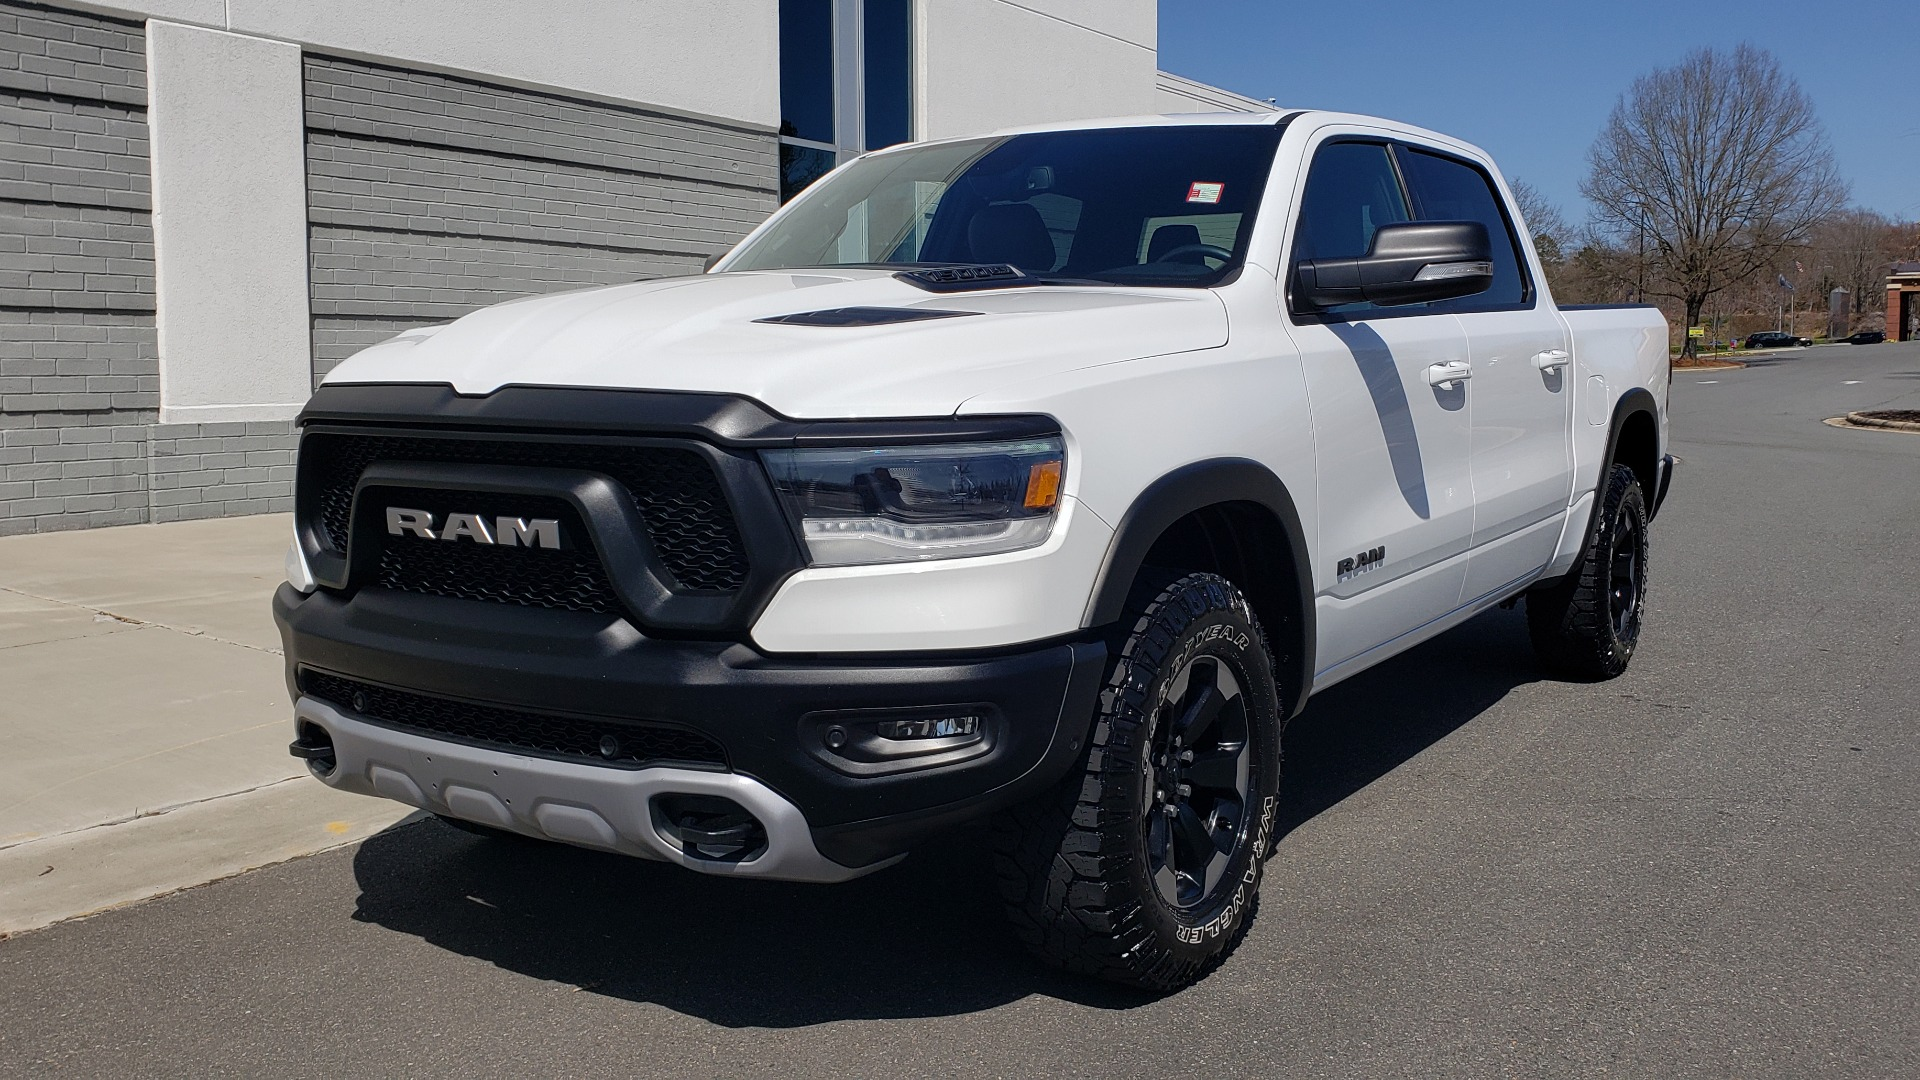 Used 2019 Ram 1500 REBEL CREWCAB 4X4 / 5.7L V8 HEMI / 8-SPD AUTO / REARVIEW for sale Sold at Formula Imports in Charlotte NC 28227 1